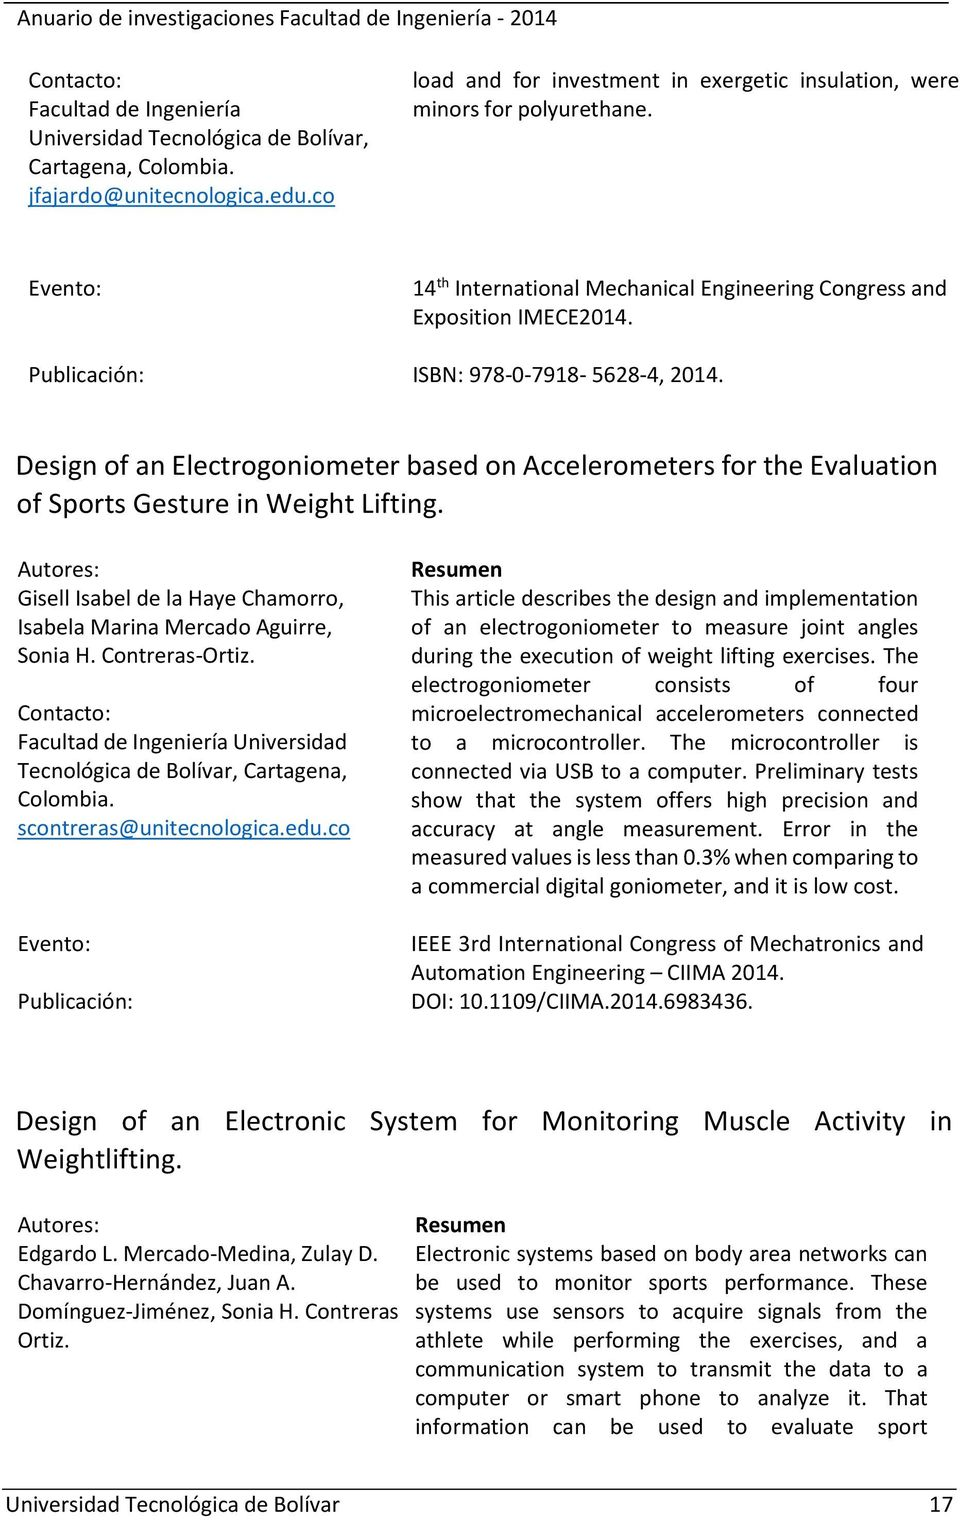 Design of an Electrogoniometer based on Accelerometers for the Evaluation of Sports Gesture in Weight Lifting. Autores: Gisell Isabel de la Haye Chamorro, Isabela Marina Mercado Aguirre, Sonia H.